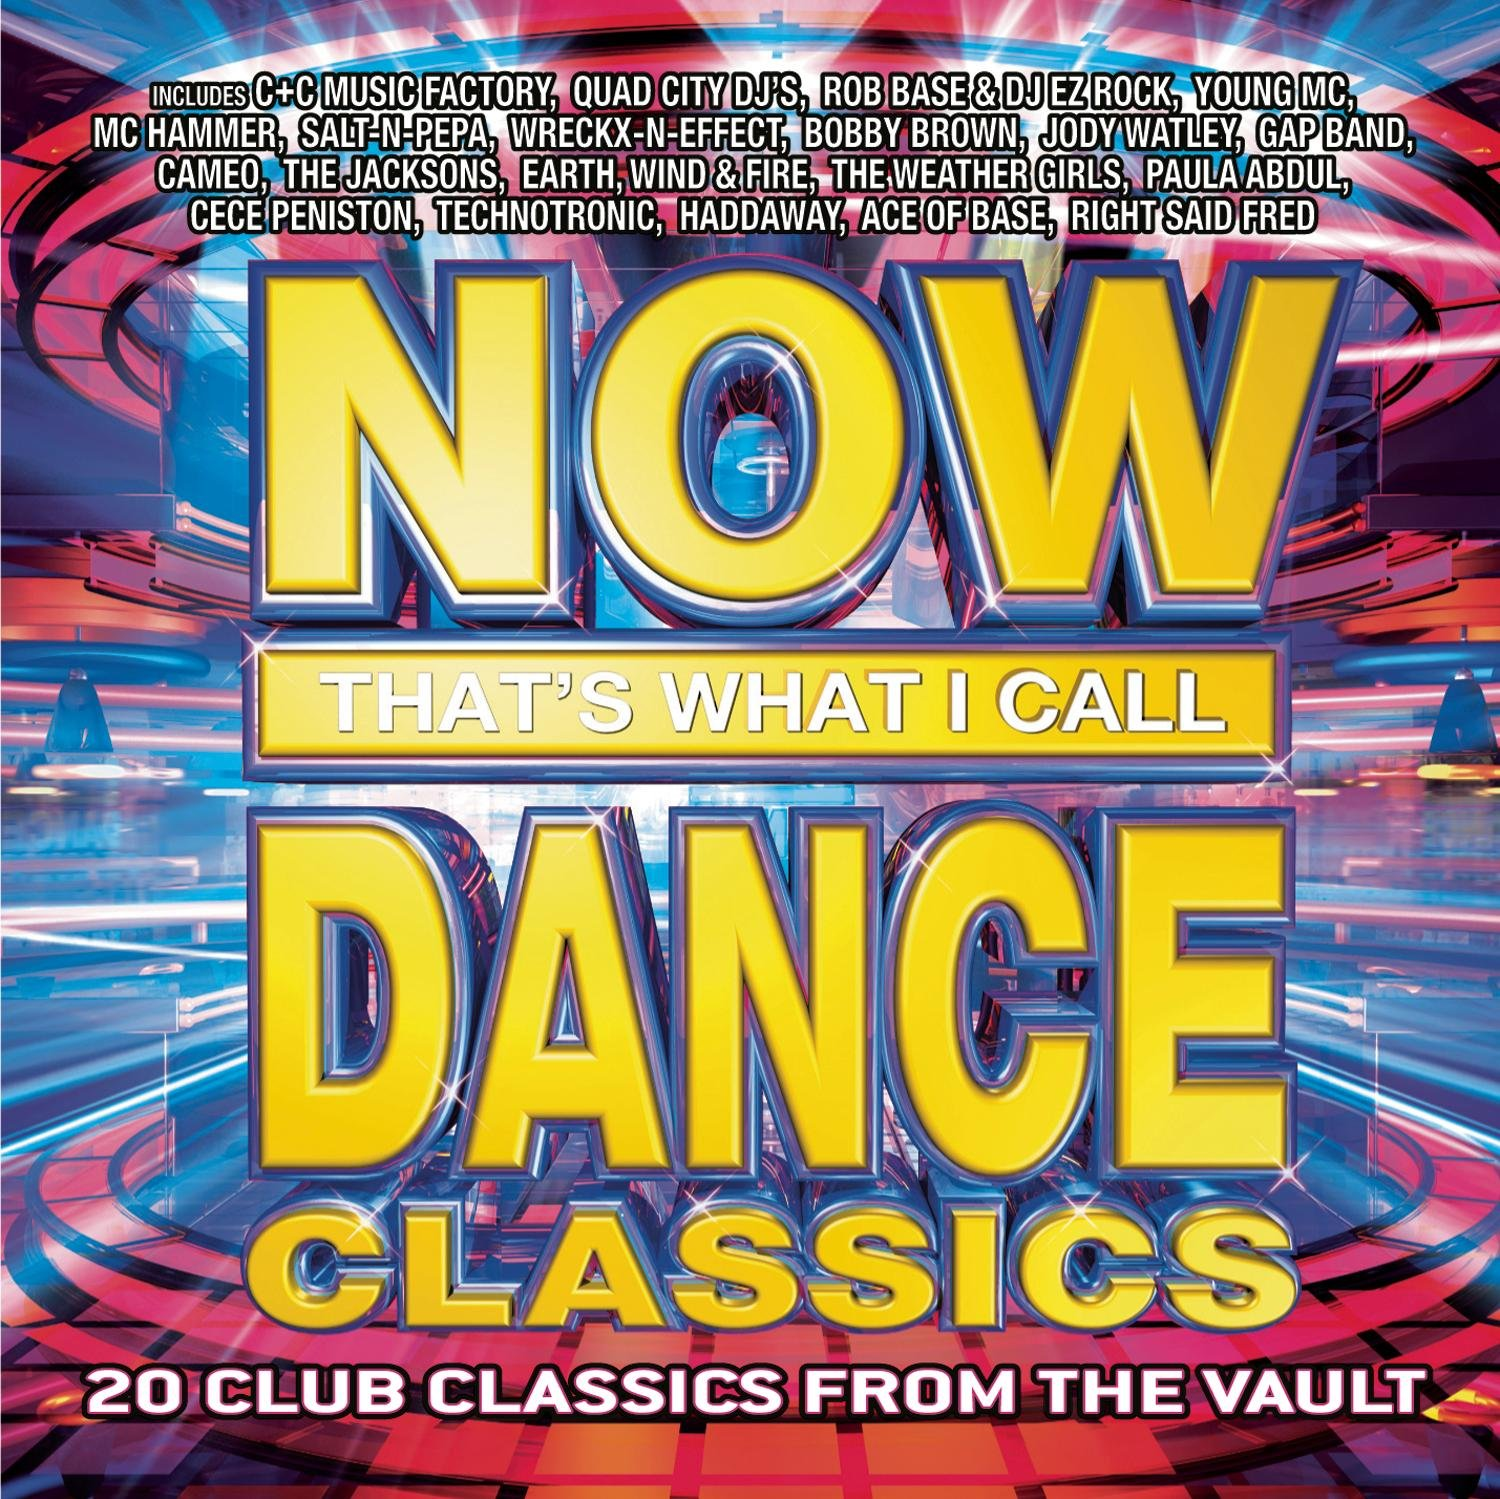 Now That's What I Call Dance Classics by Sony Music